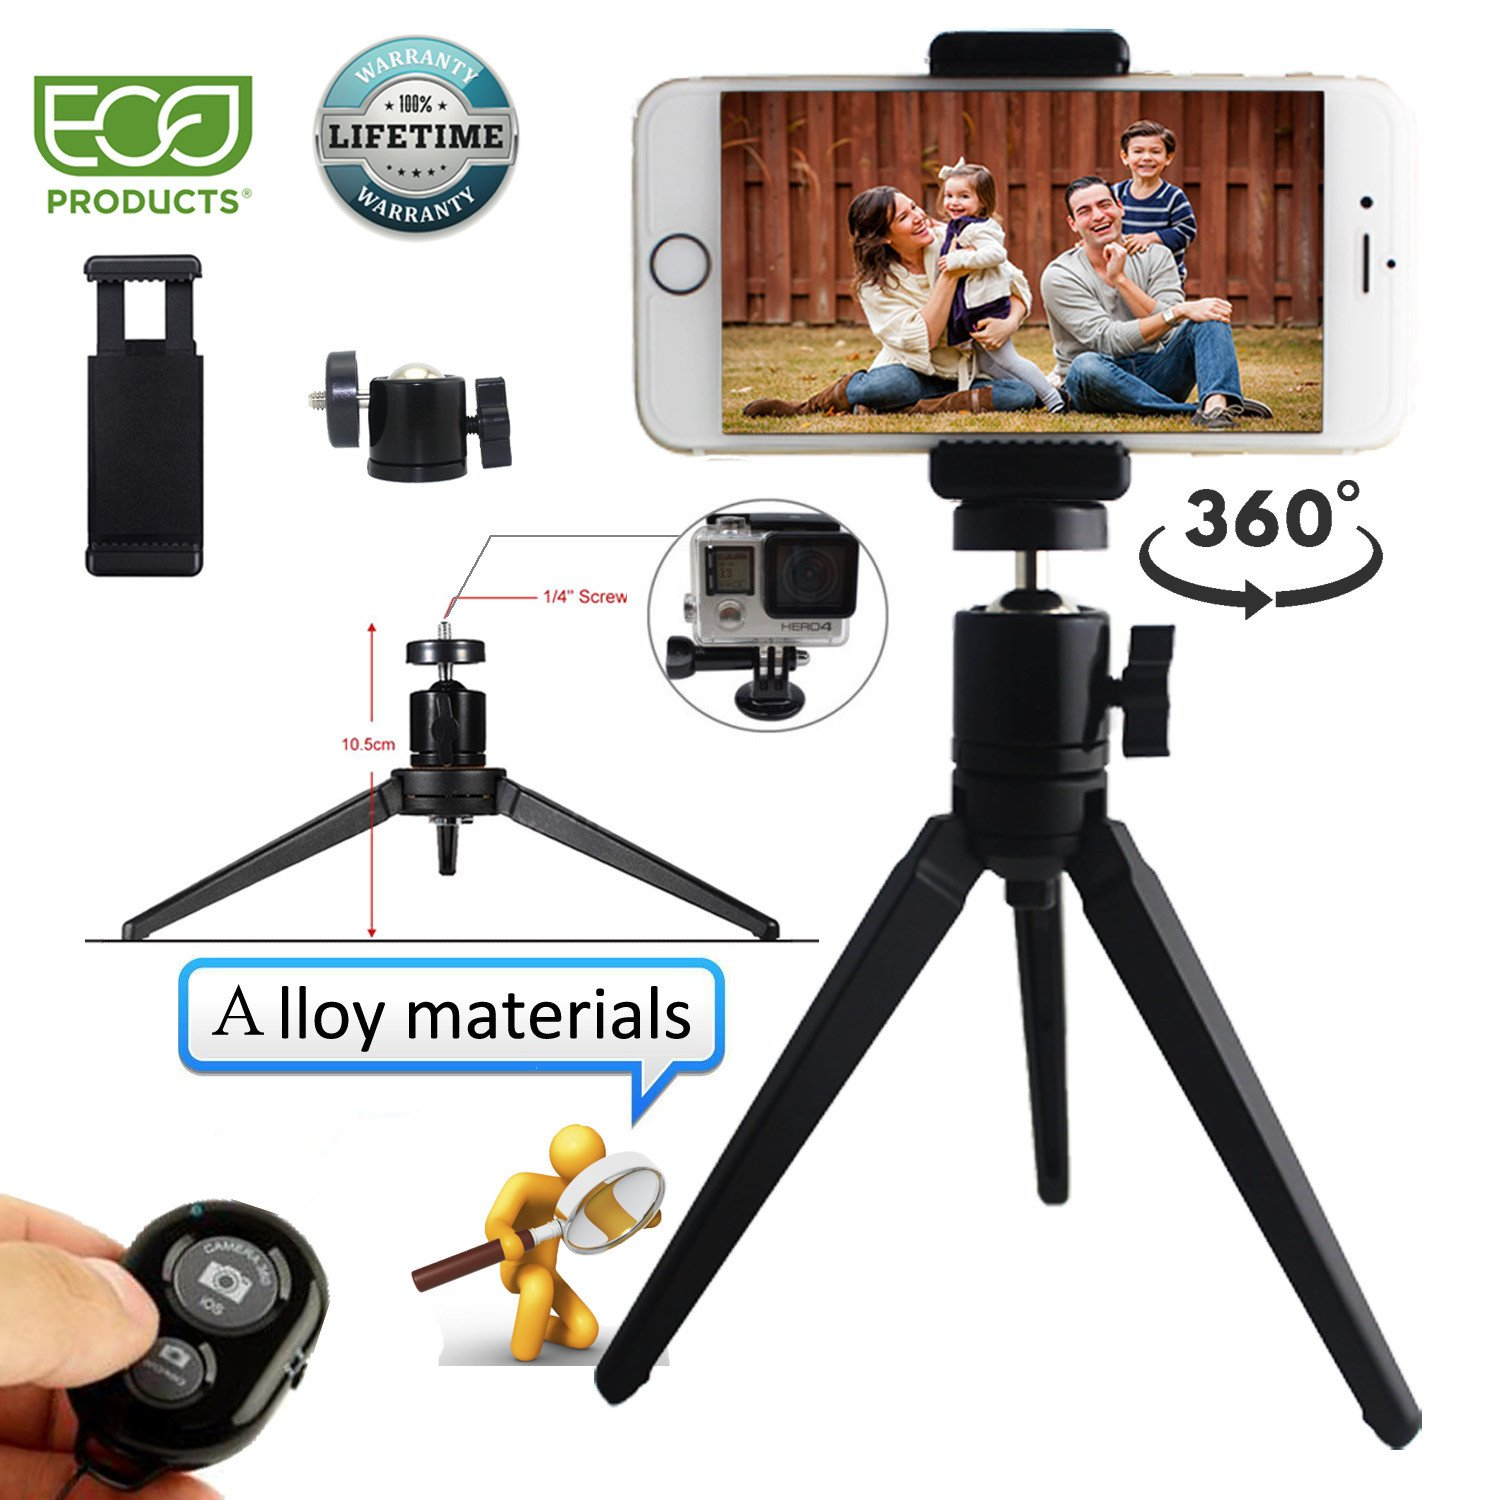 Phone Tripod Phone Stand with Camera Remote and Phone Holder for iPhone X 8/8s 7 7 Plus 6s Plus 6s 6 SE Samsung Galaxy S8 Plus S8 Edge S7 Action Camera GoPro/Akaso (Alloy Tripod)